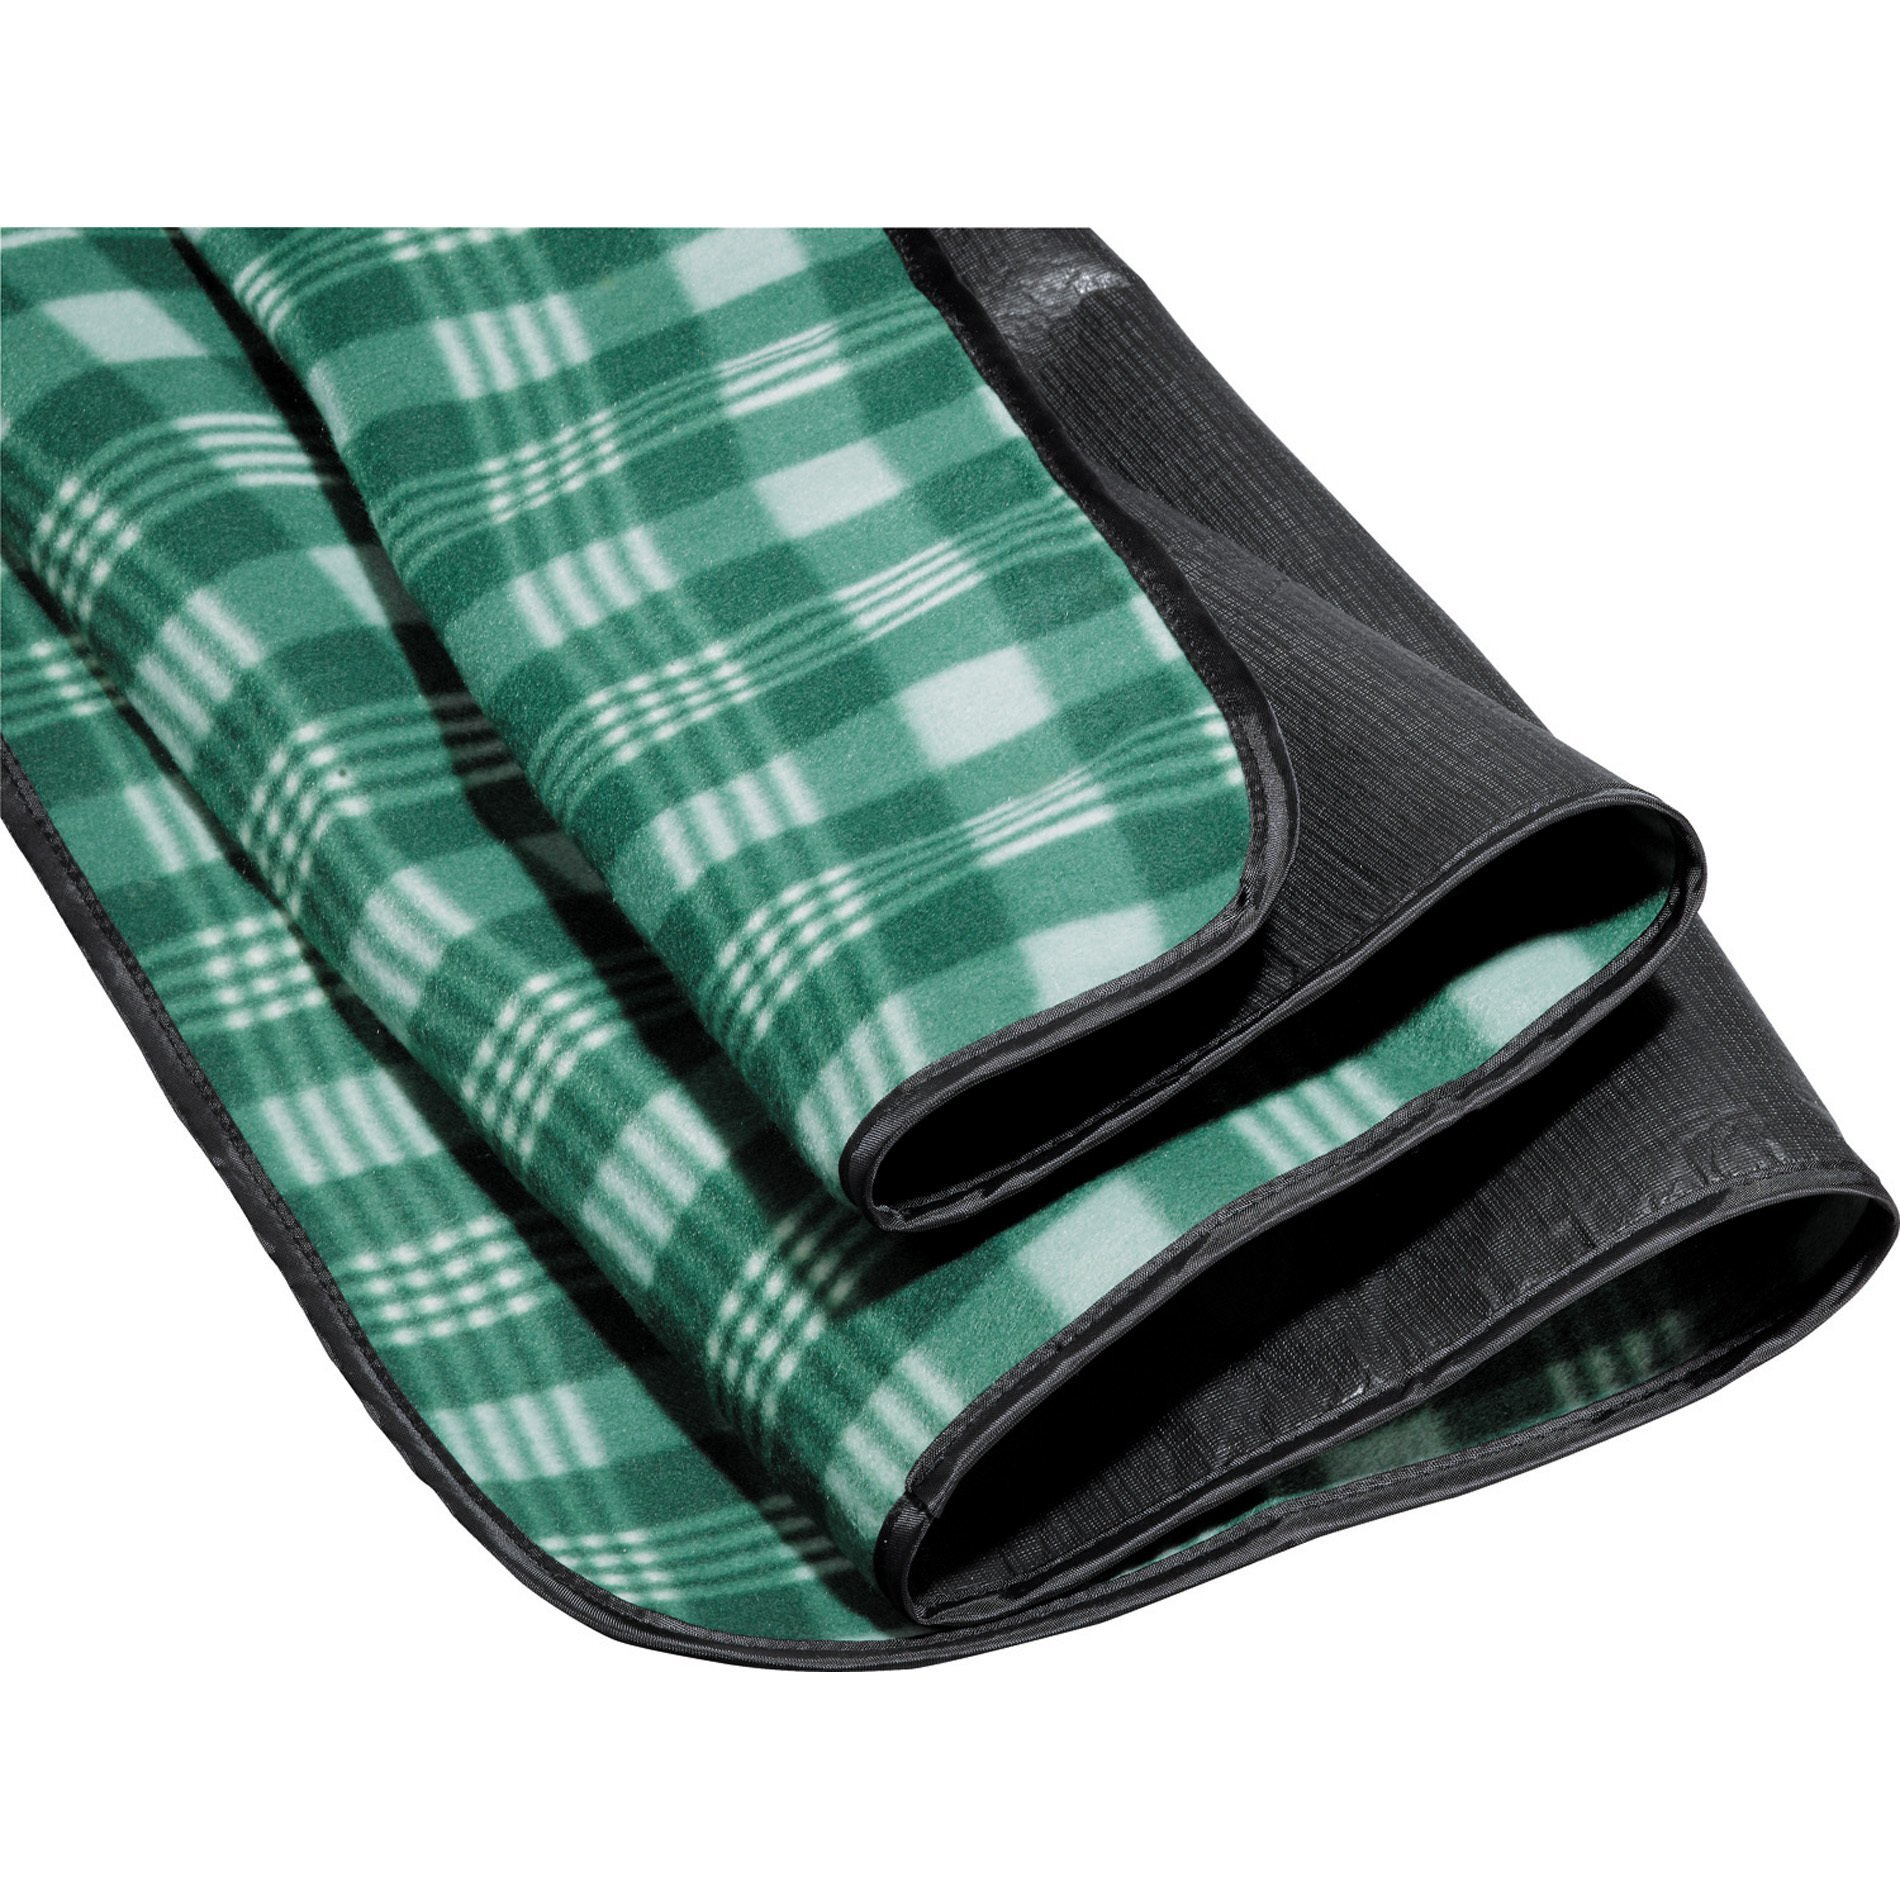 "Fold Up Picnic Blanket, 48"" x 54"""